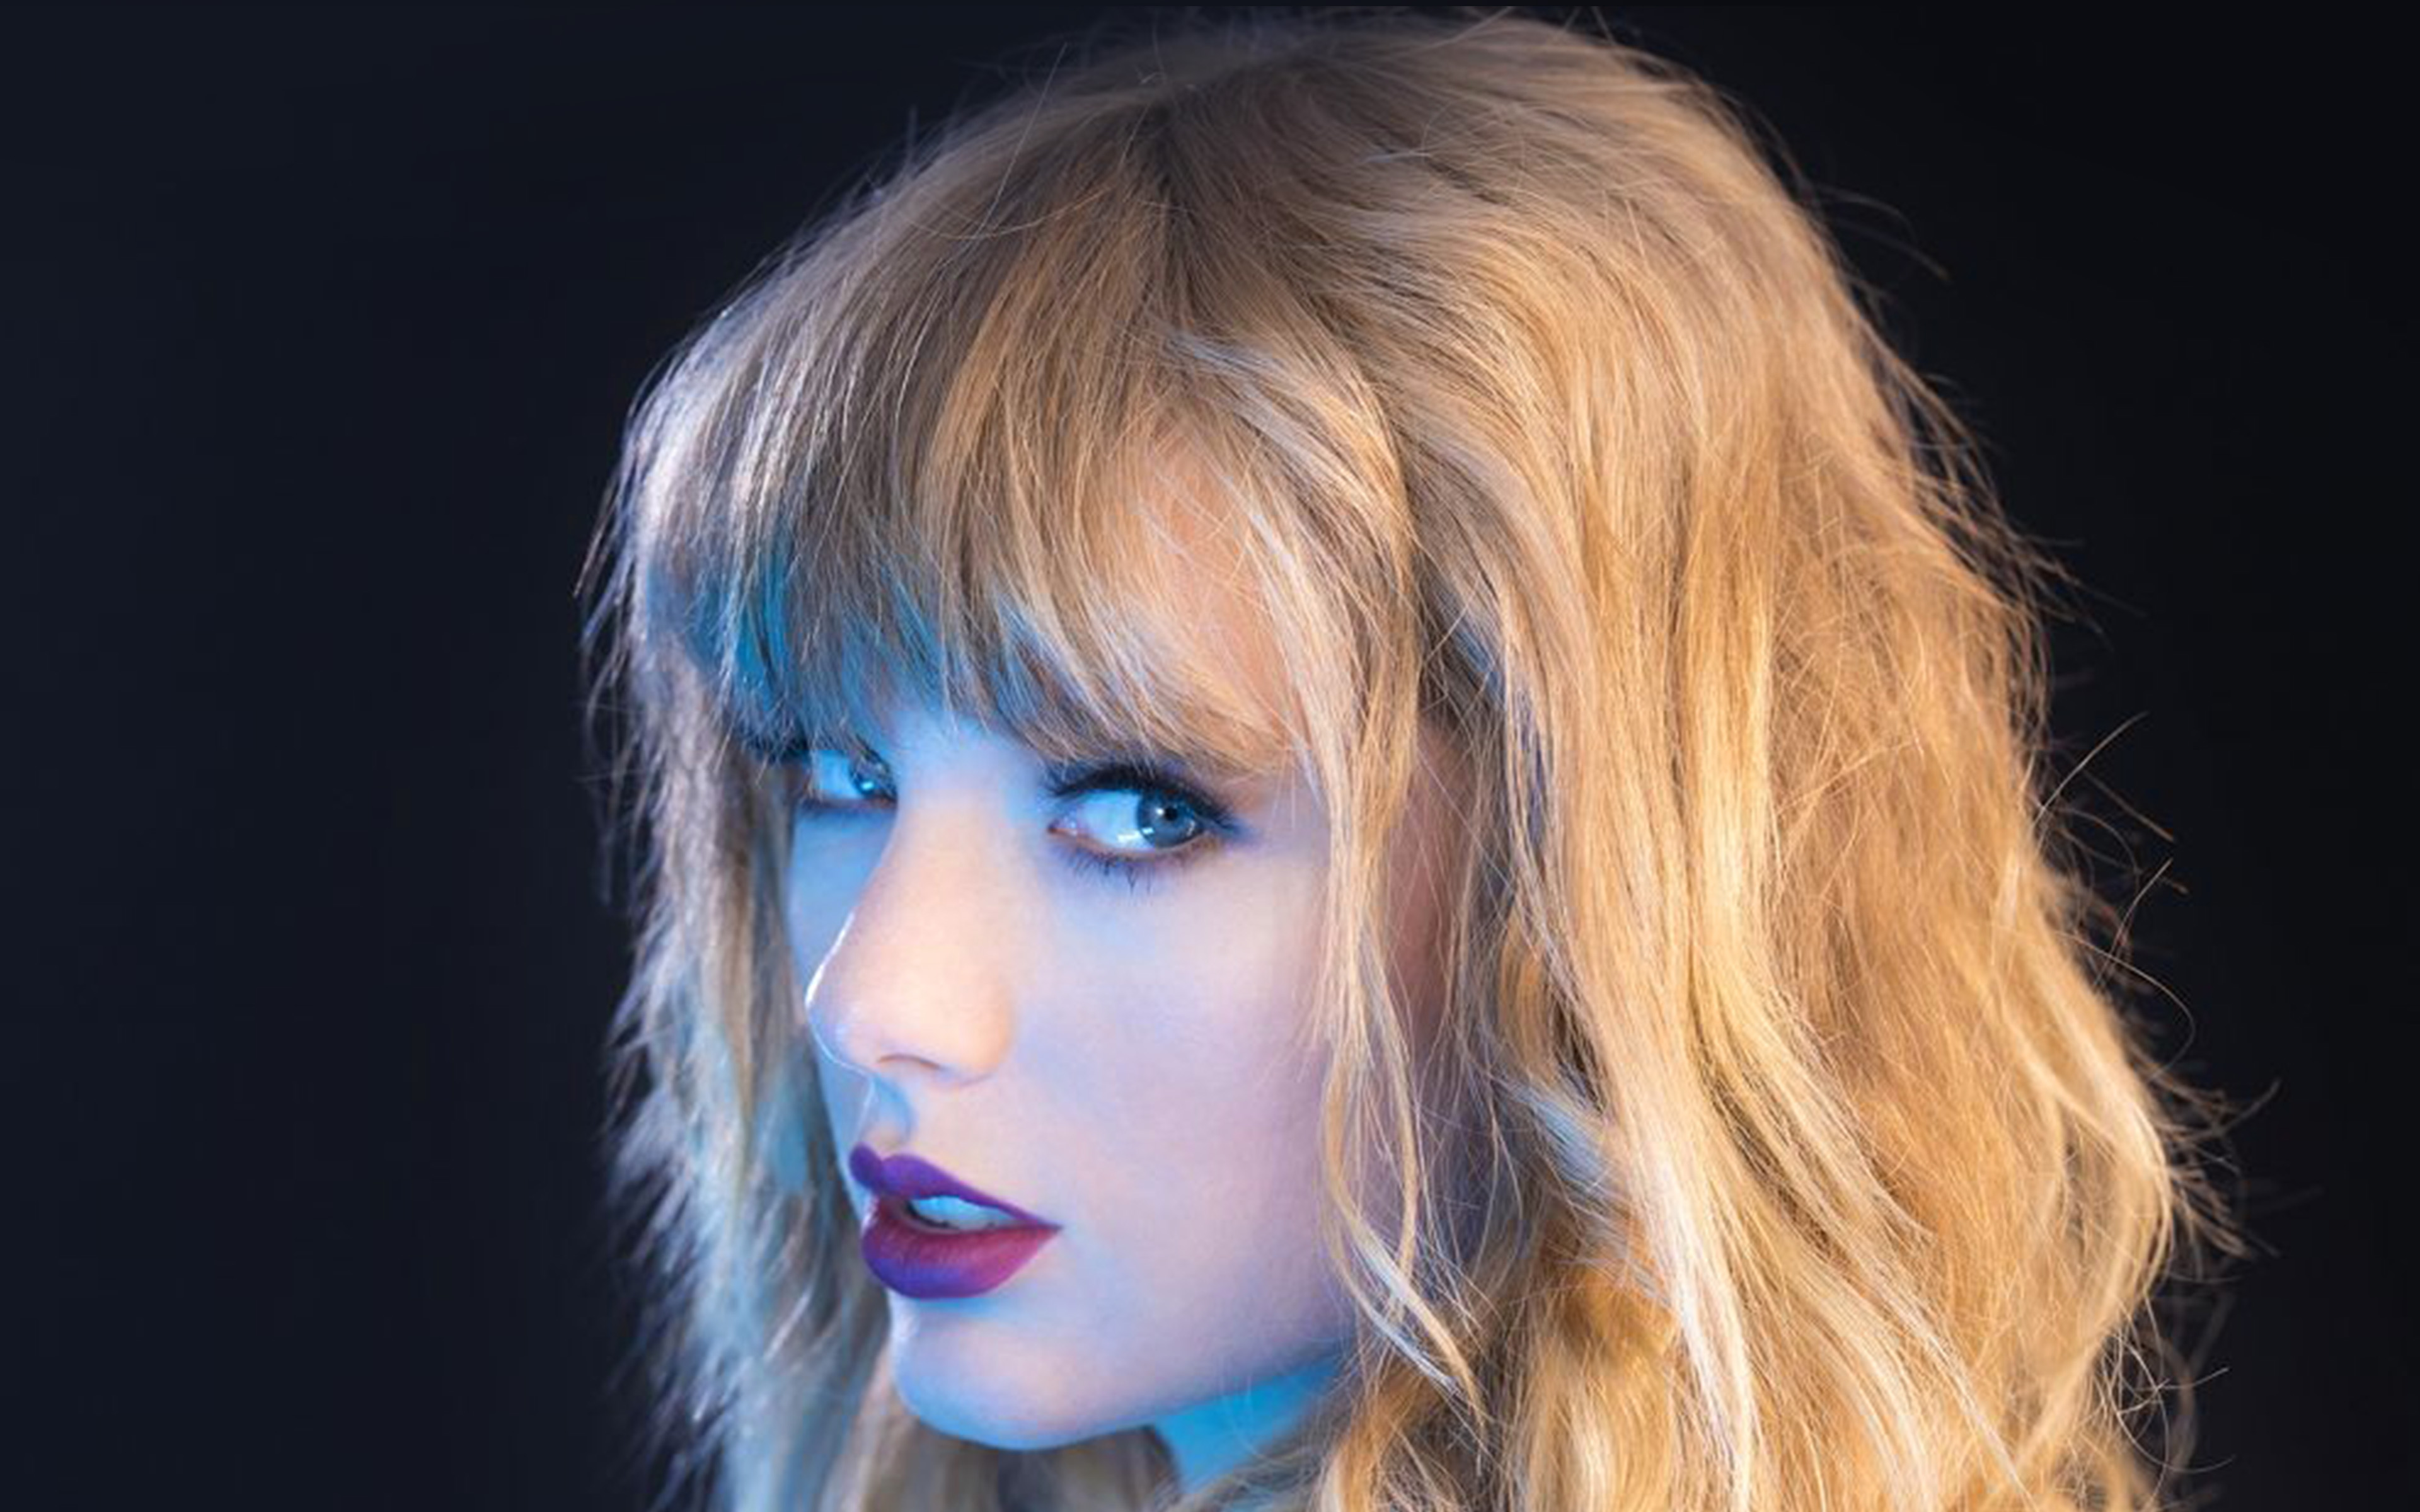 Fall Wallpaper Iphone 5 Hq22 Taylor Swift Blue Sexy Singer Wallpaper